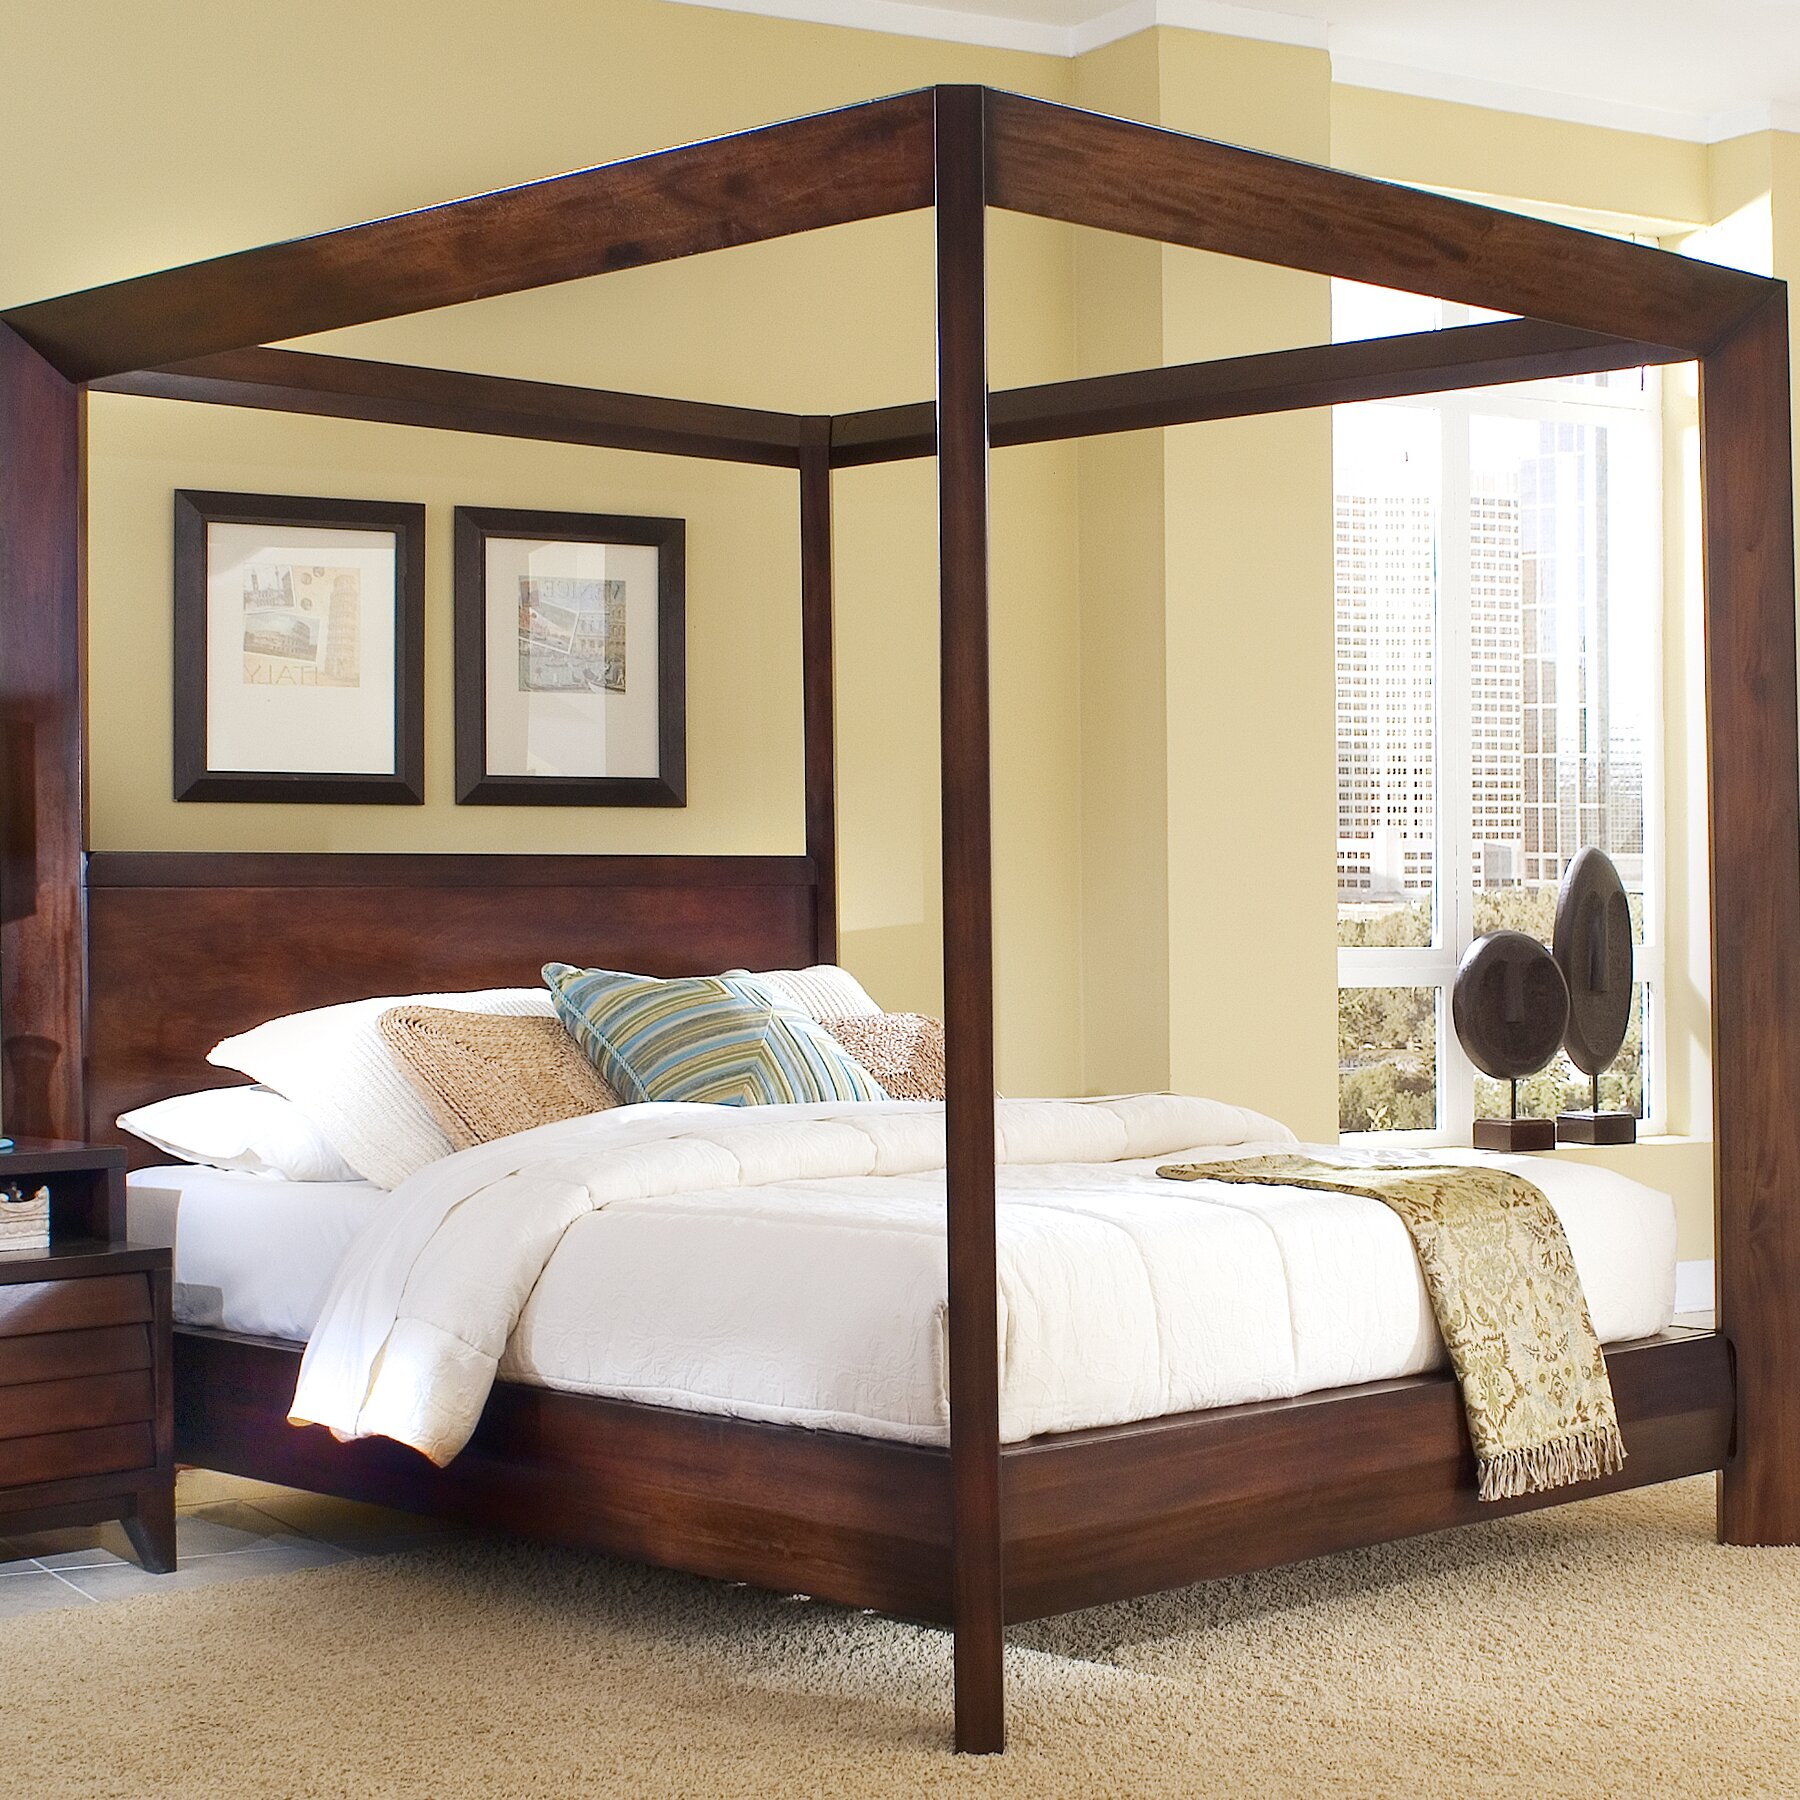 Home image island canopy customizable bedroom set - Pictures of canopy beds ...